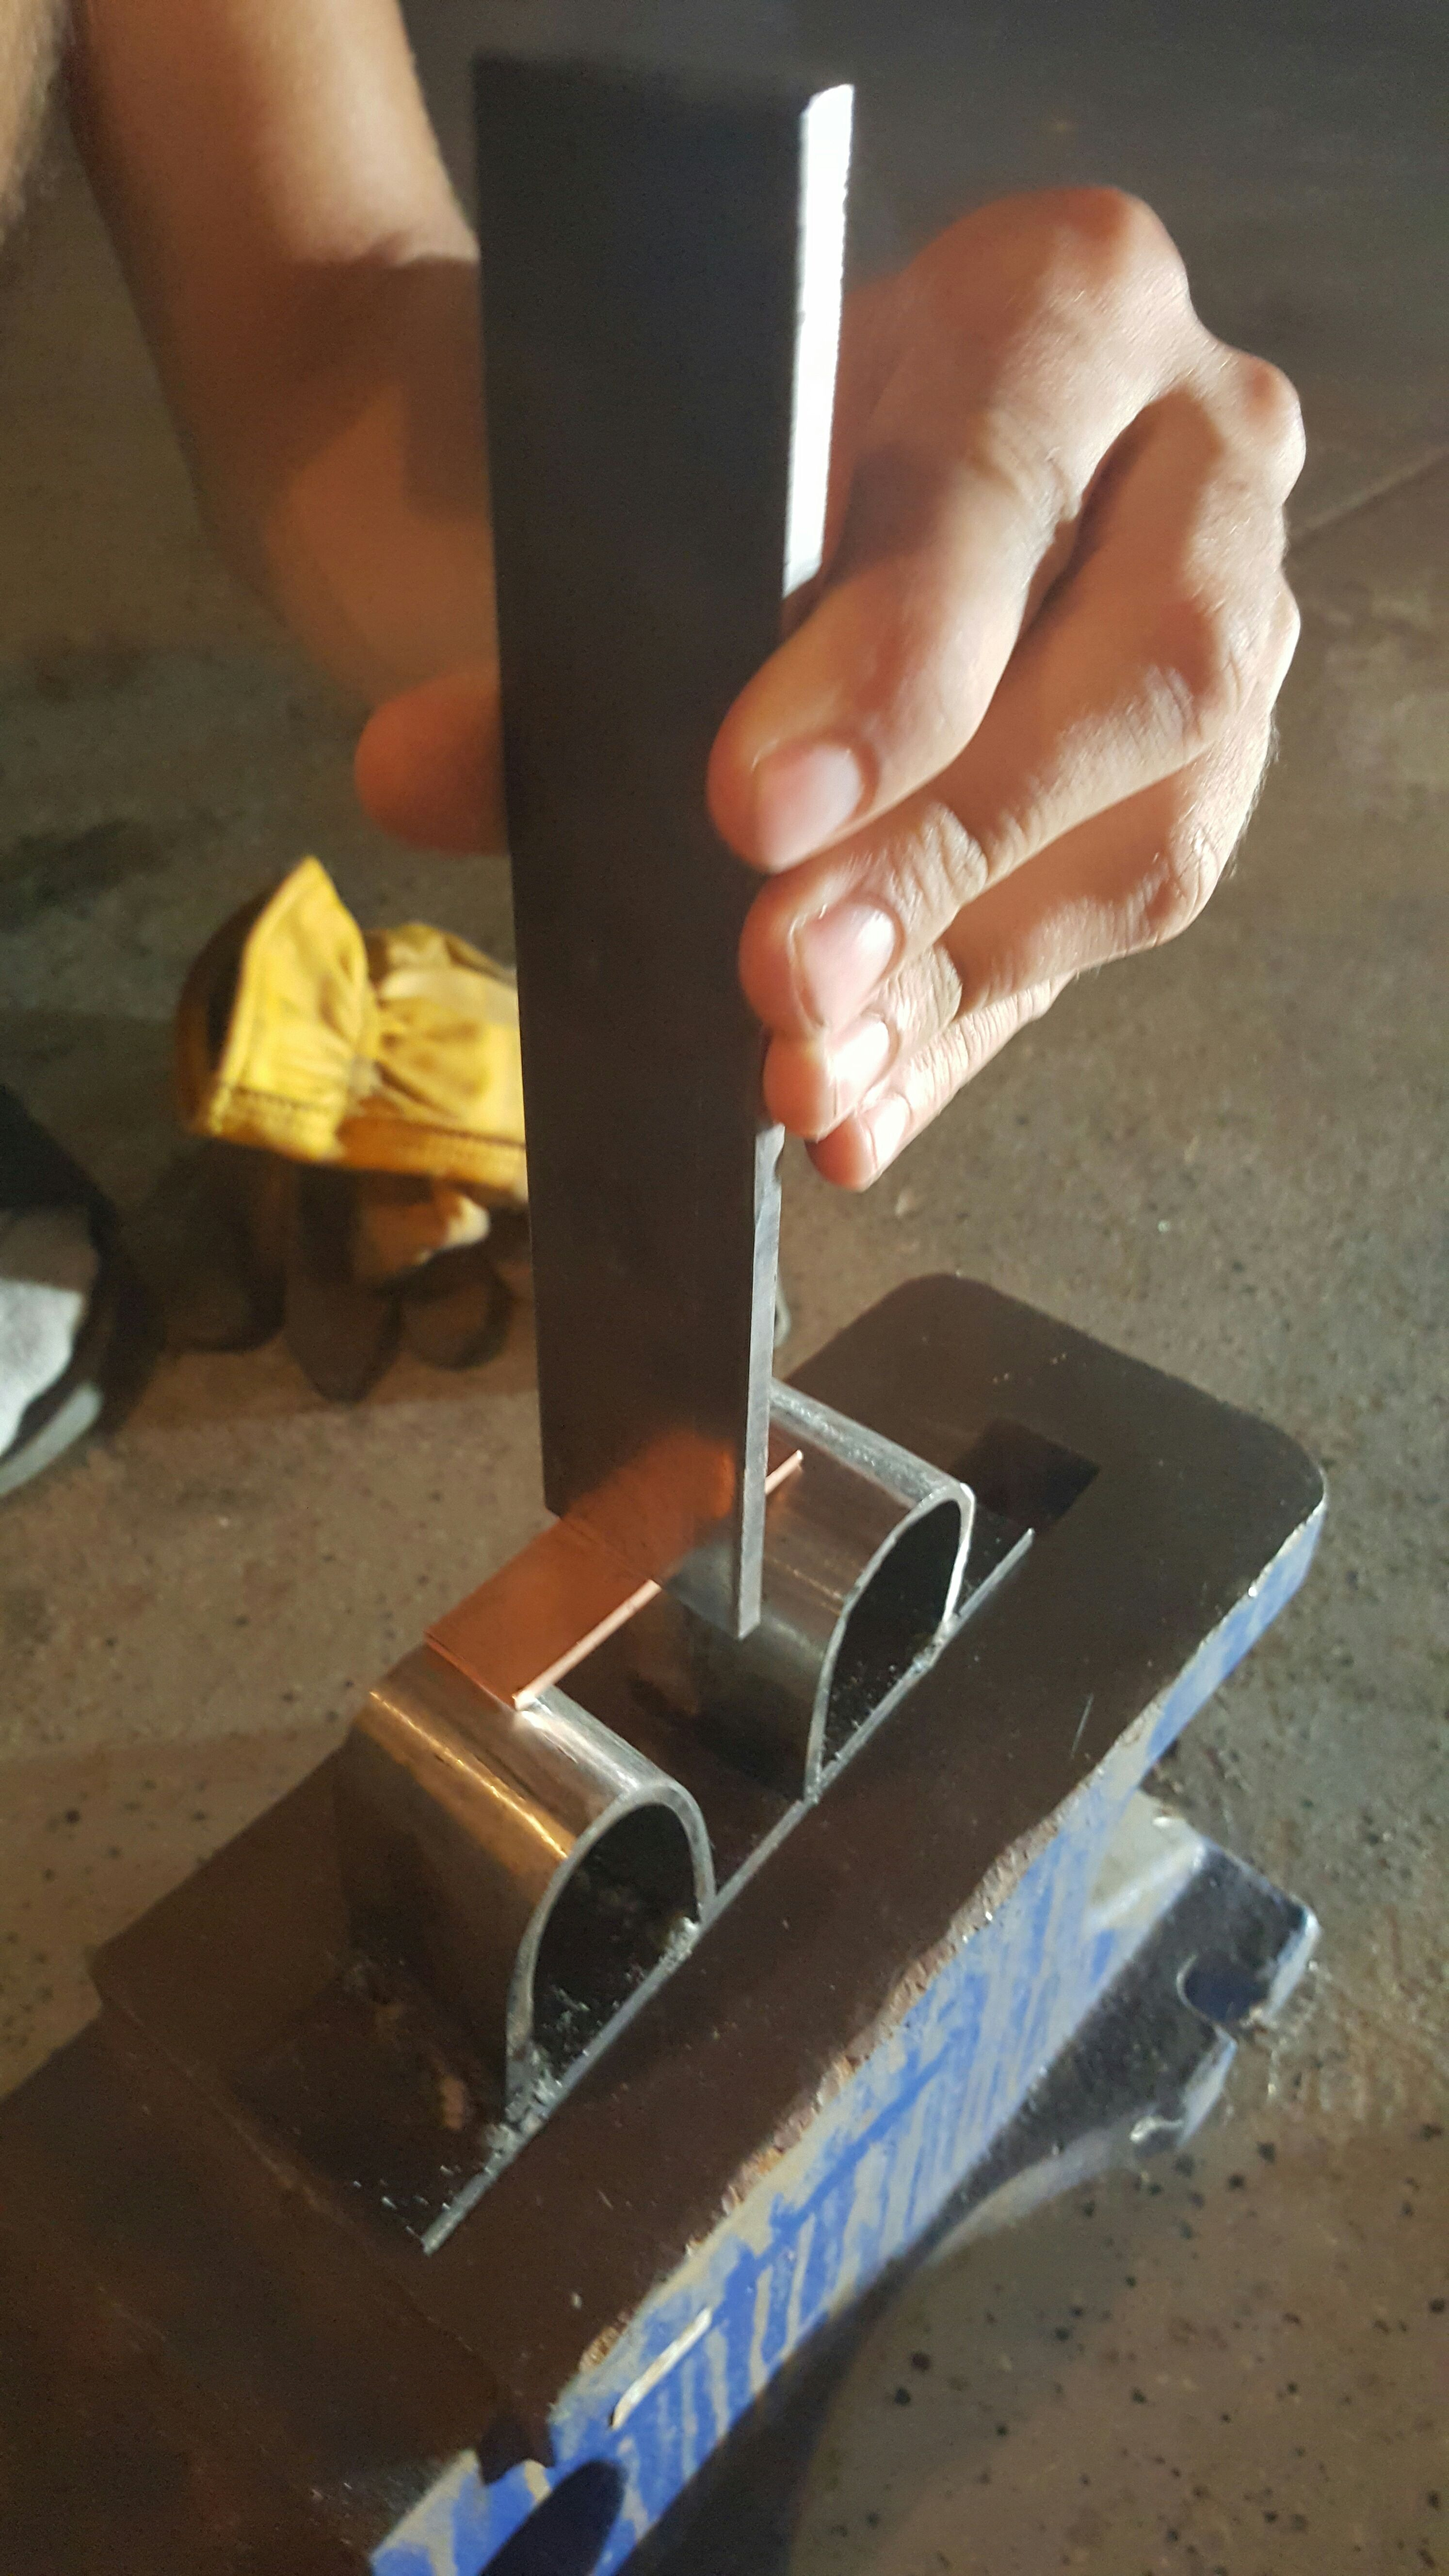 Picture of Cutting and Rough Forming of the Copper